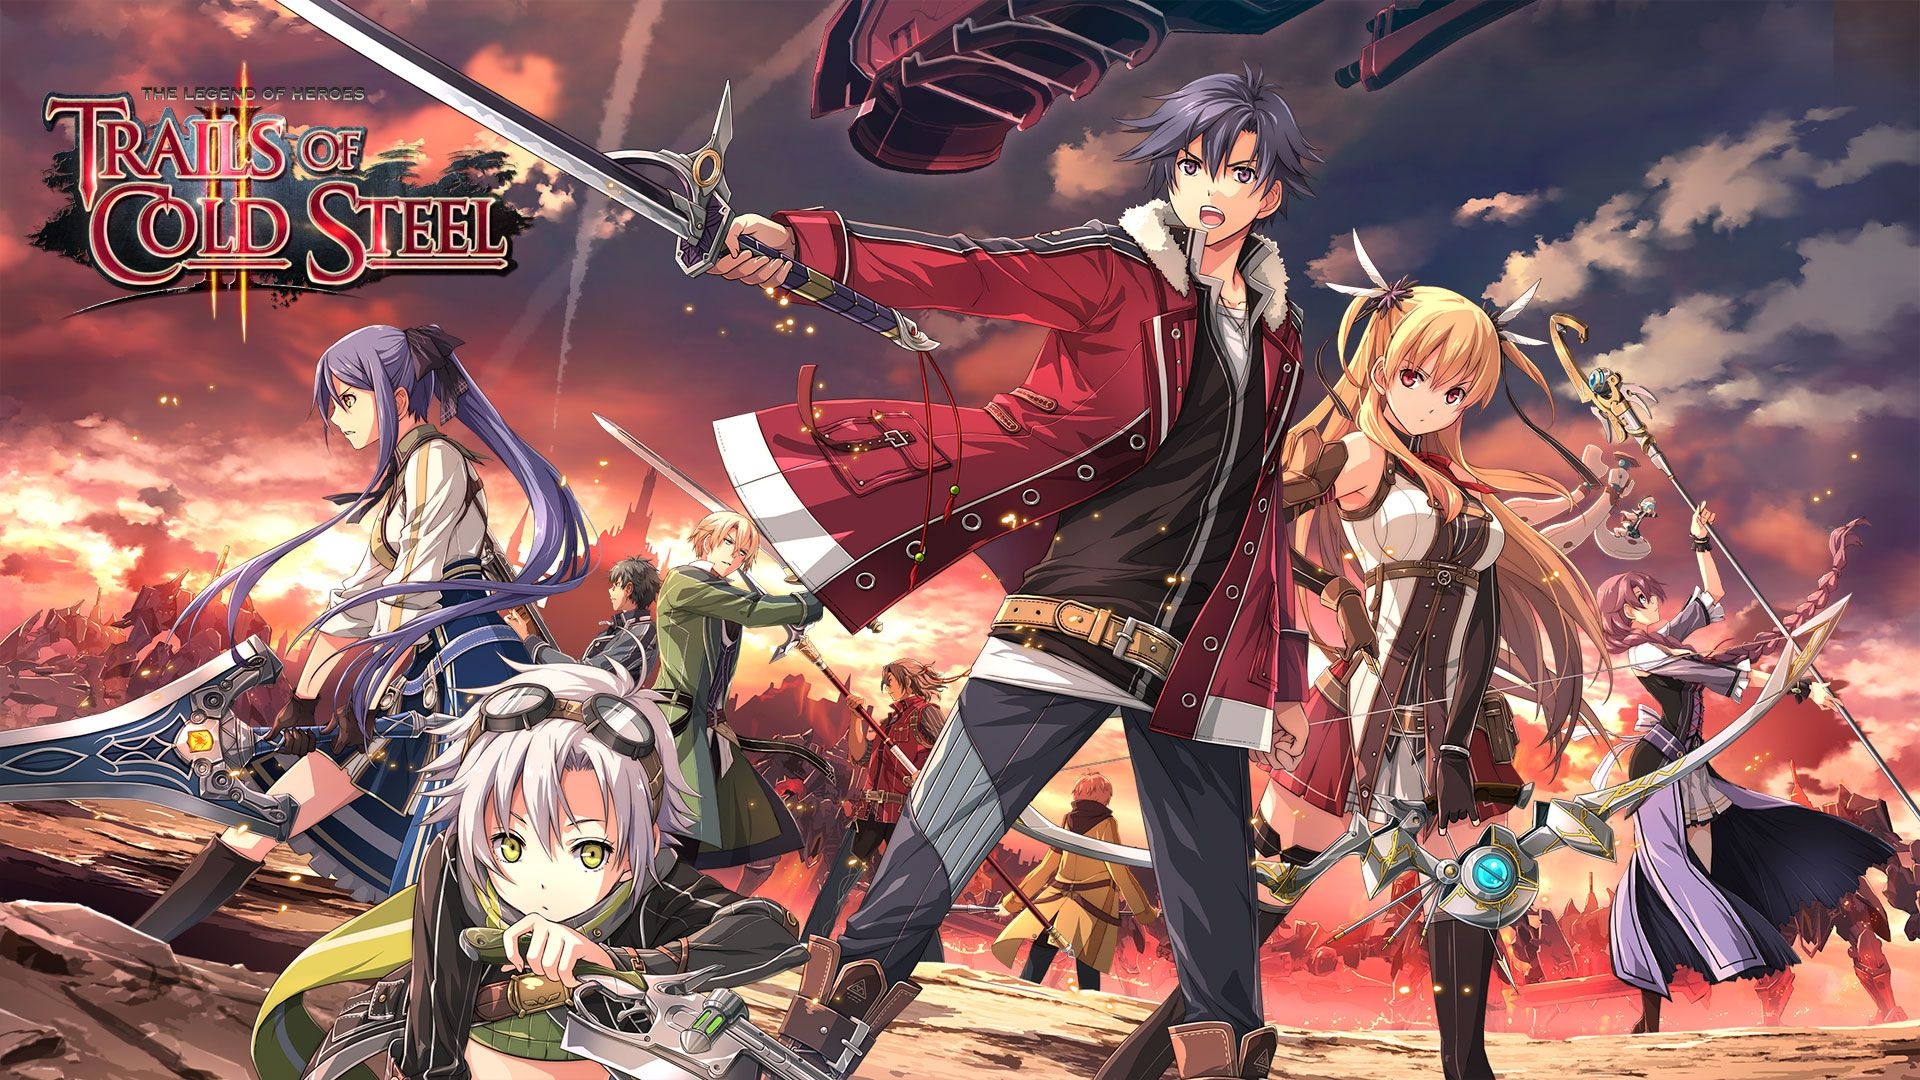 Trails Of Cold Steel Ii Is Out For Ps3 And Ps Vita In Europe Keengamer Trails Of Cold Steel The Legend Of Heroes Hero Wallpaper